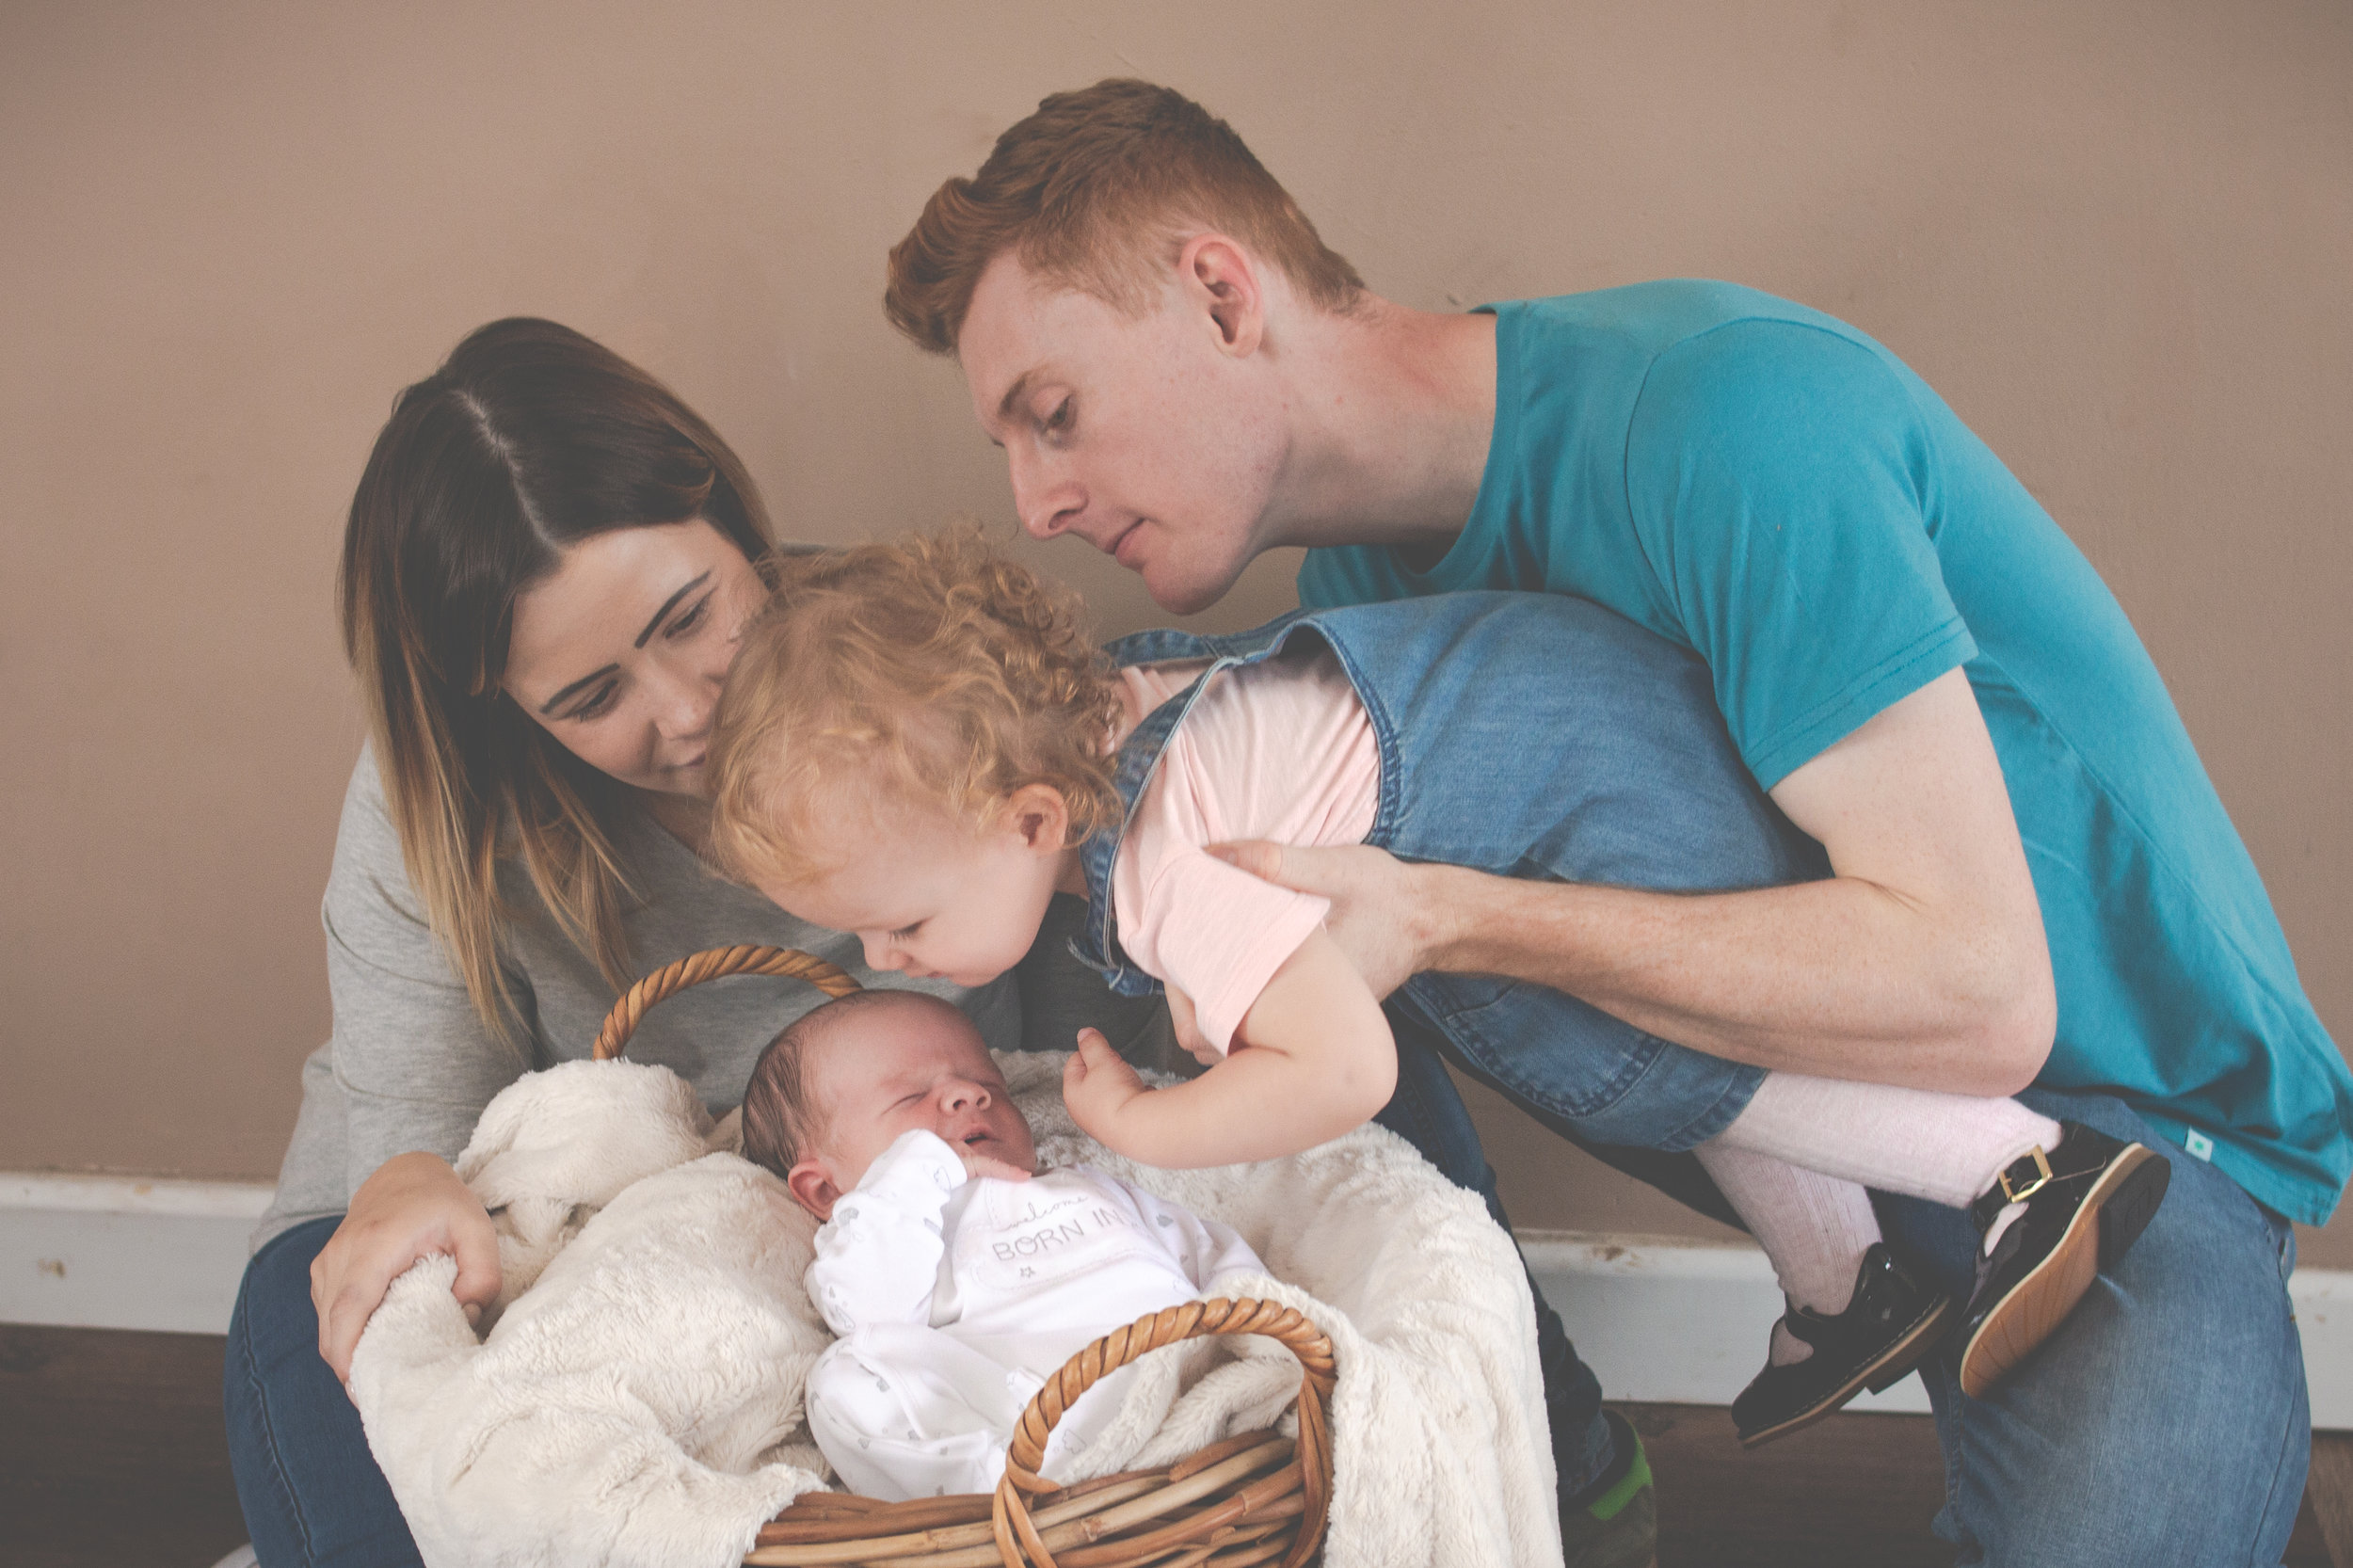 studio-mobile-newborn-family-photography-keighley-skipton-03